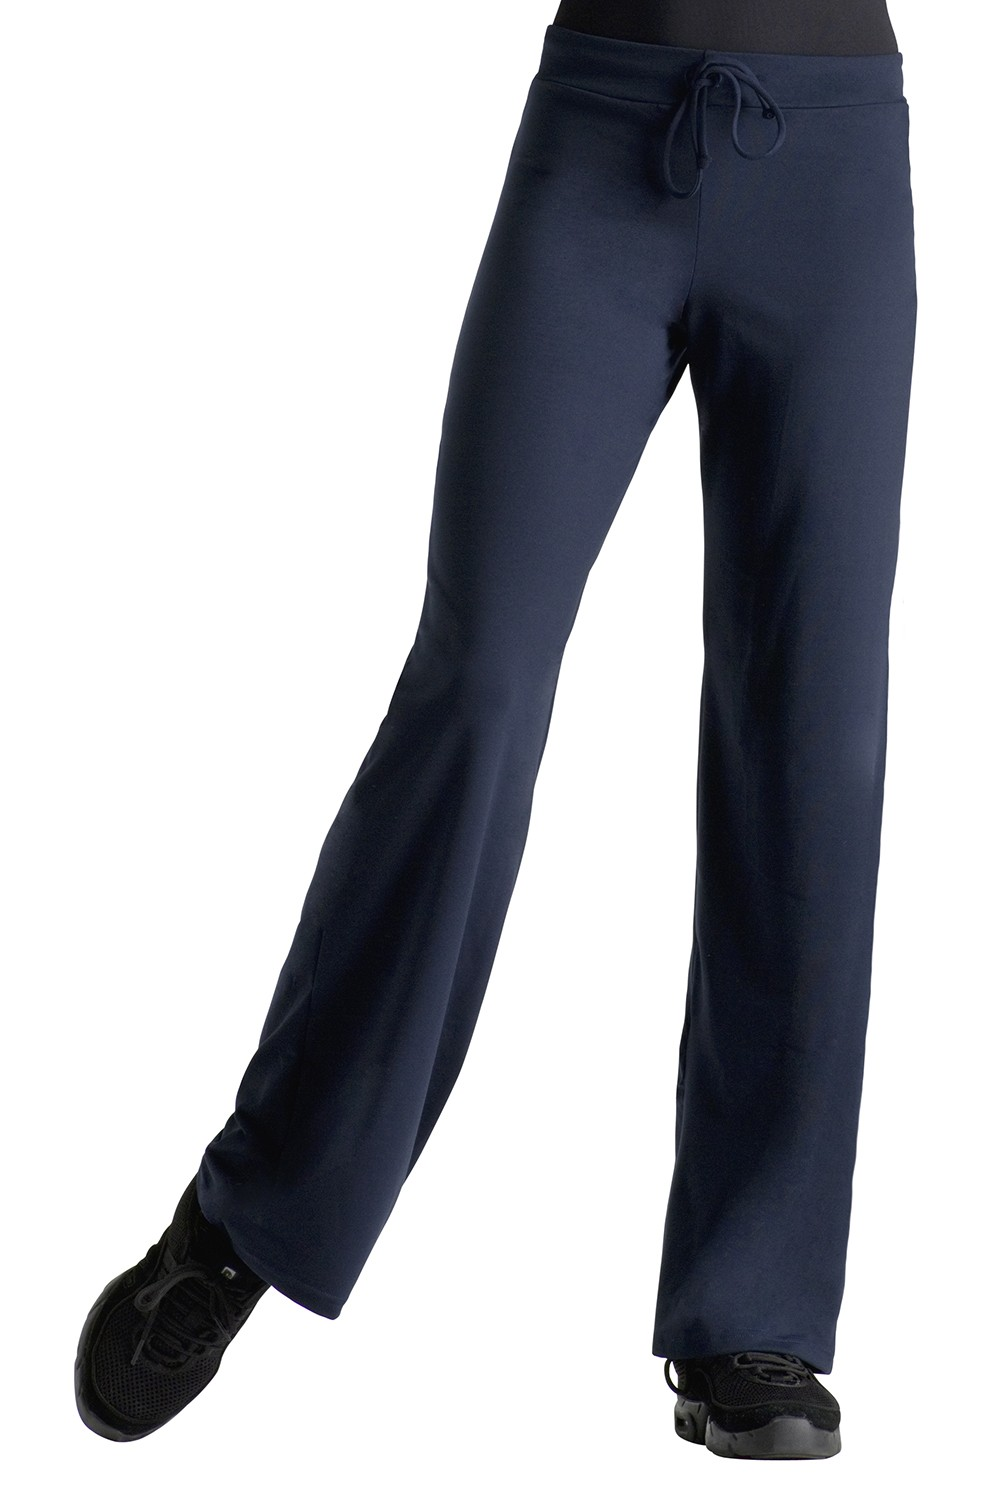 Drawstring Pant Women's Dance Pants